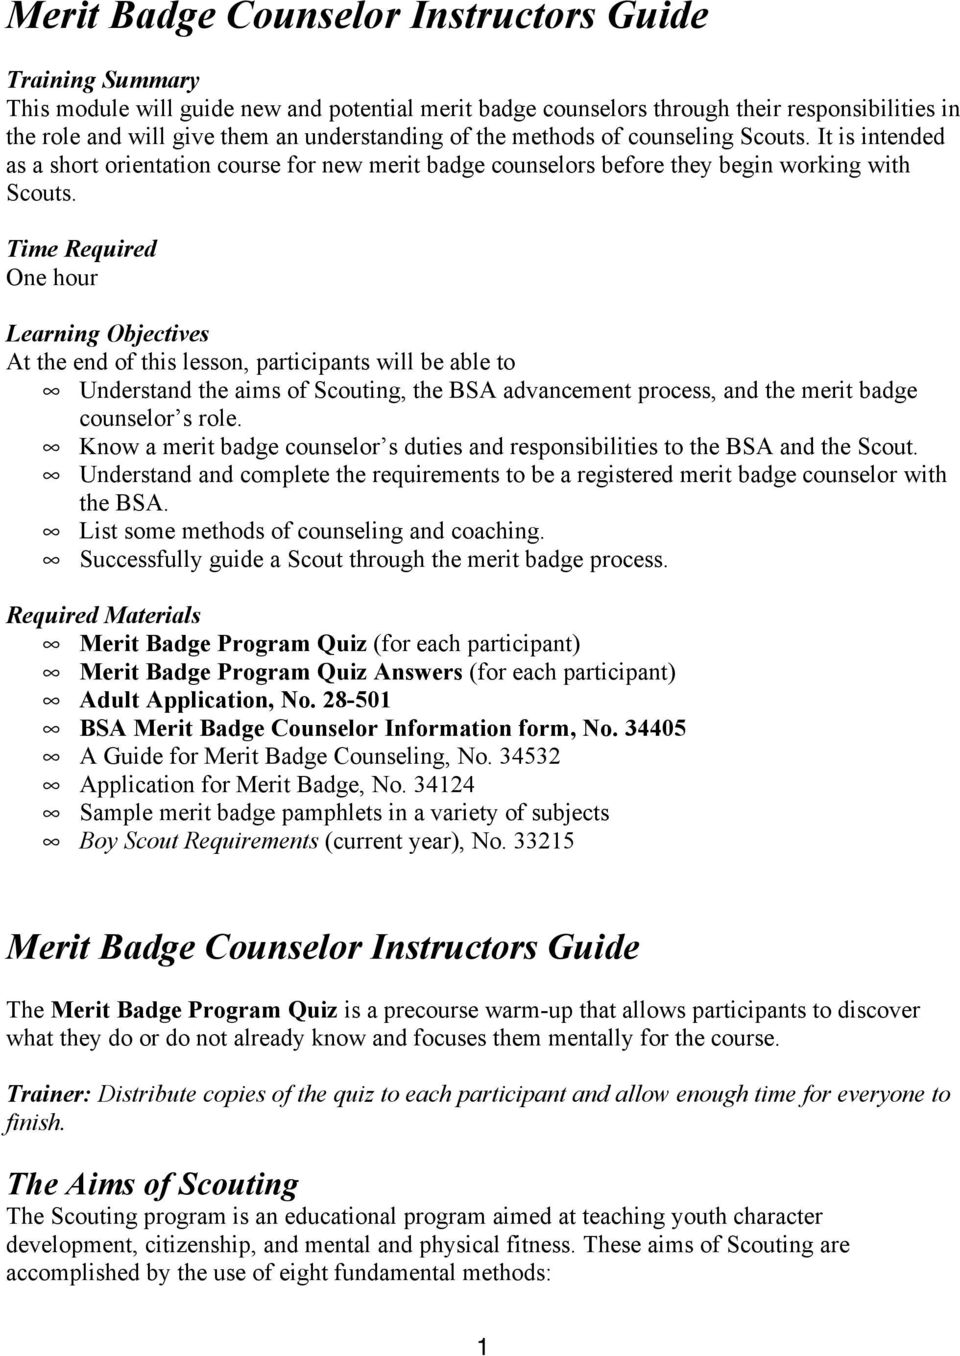 Merit Badge Counselor Instructors Guide Pdf